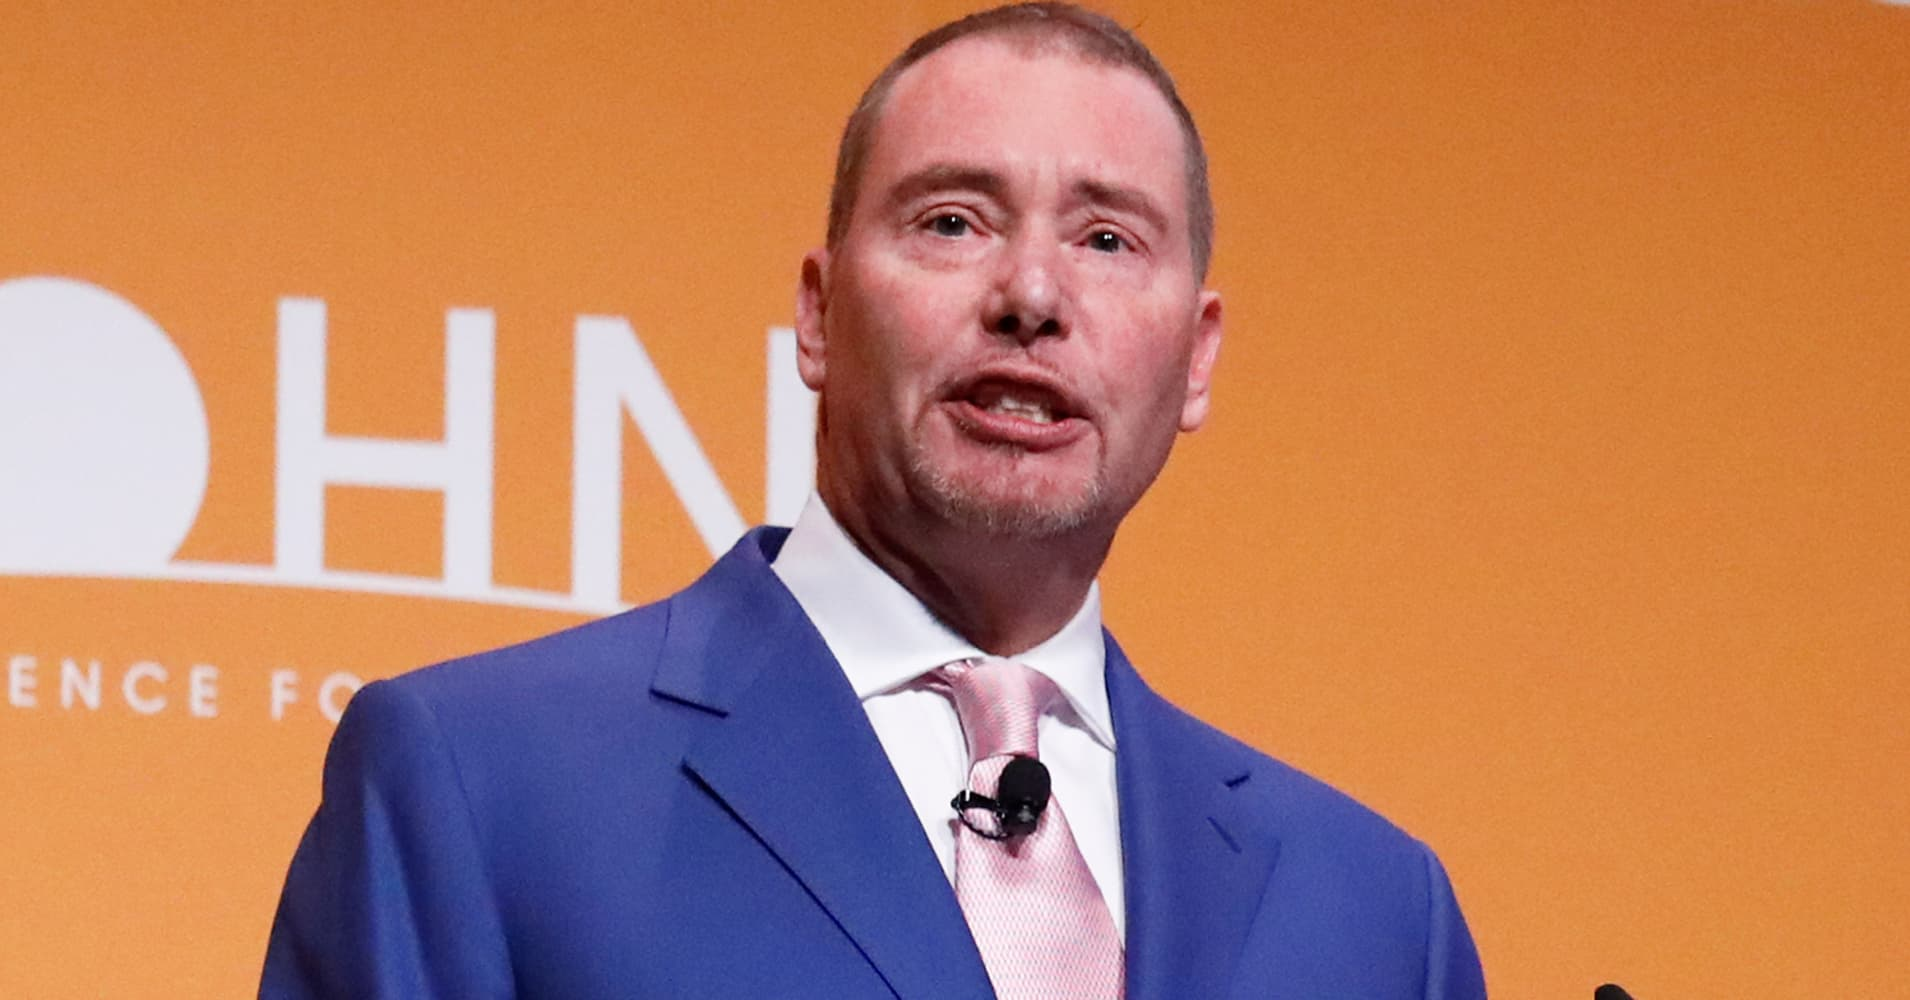 Gundlach says he's long energy stocks, short Facebook at Sohn Conference